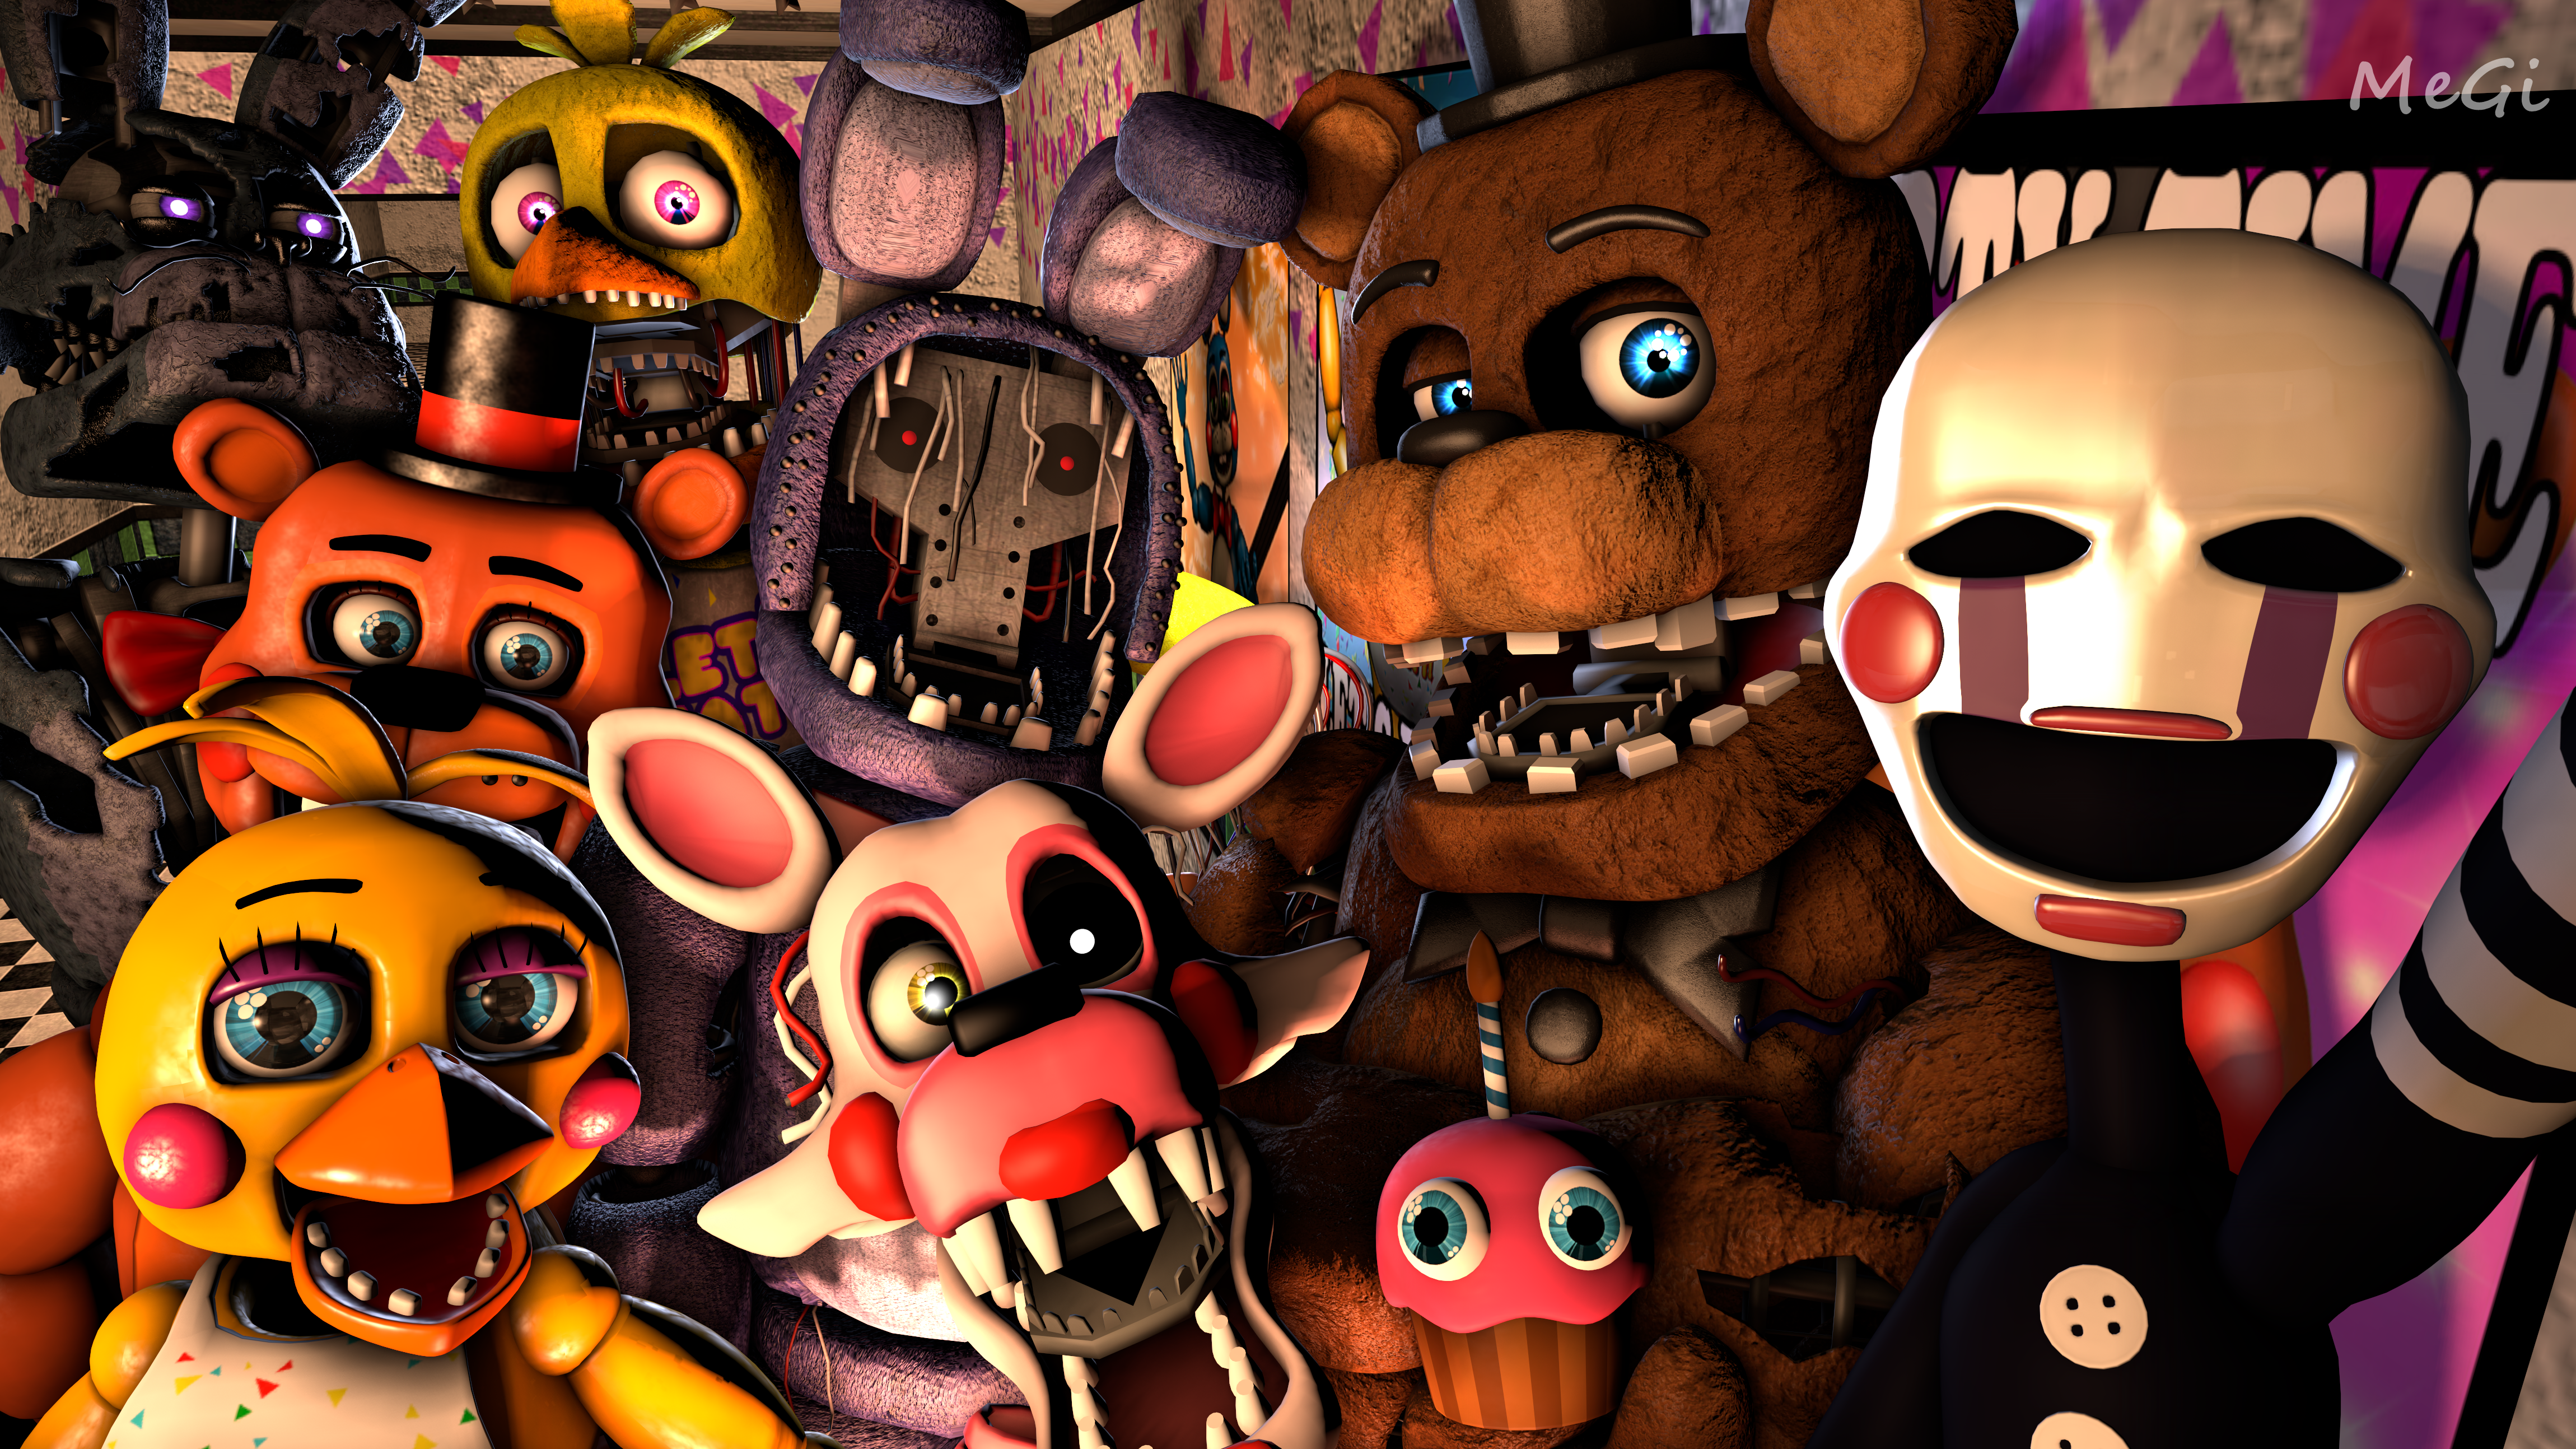 Withered Freddy Withered Bonnie Withered Chica Toy Freddy The